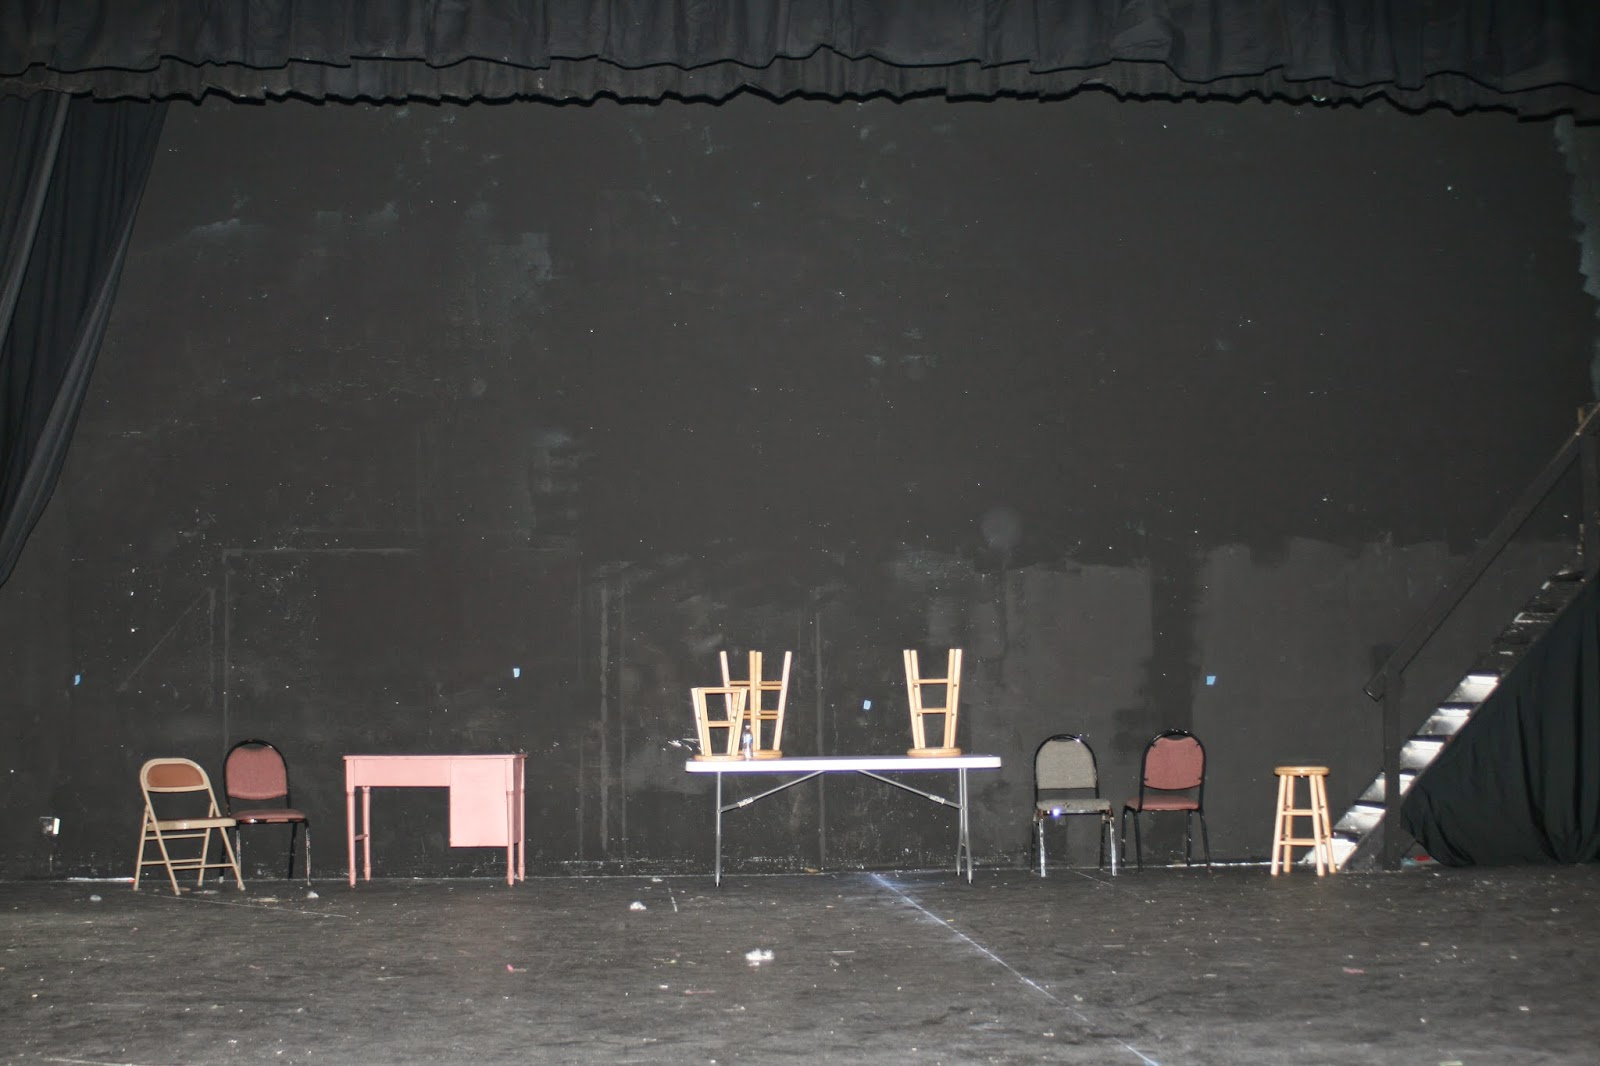 It Starts With An Empty Stage